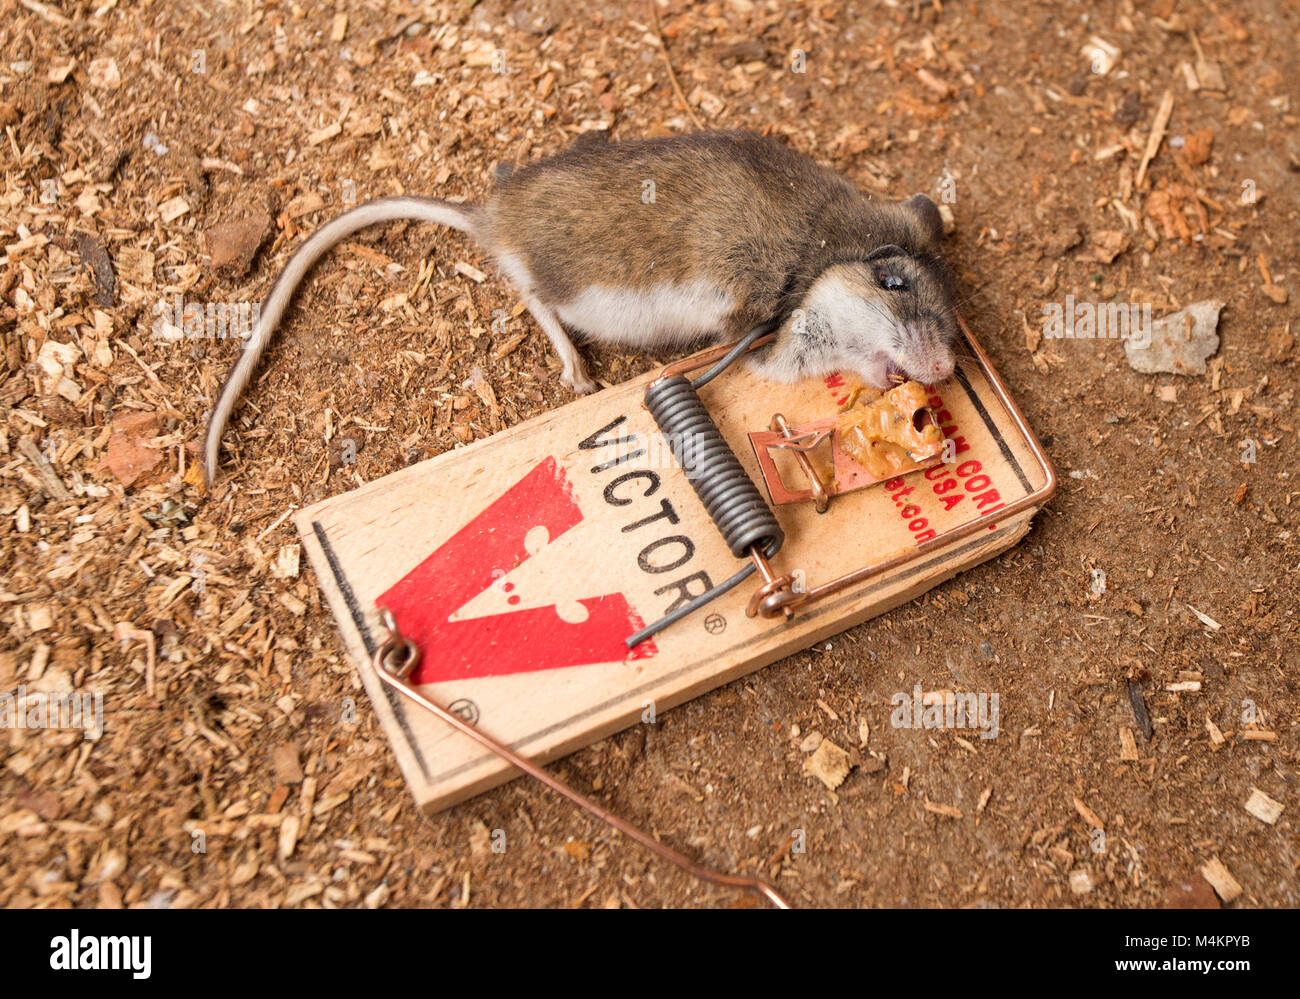 A dead mouse in a Victor mouse trap. House mouse, Mus musculus domesticus - Stock Image